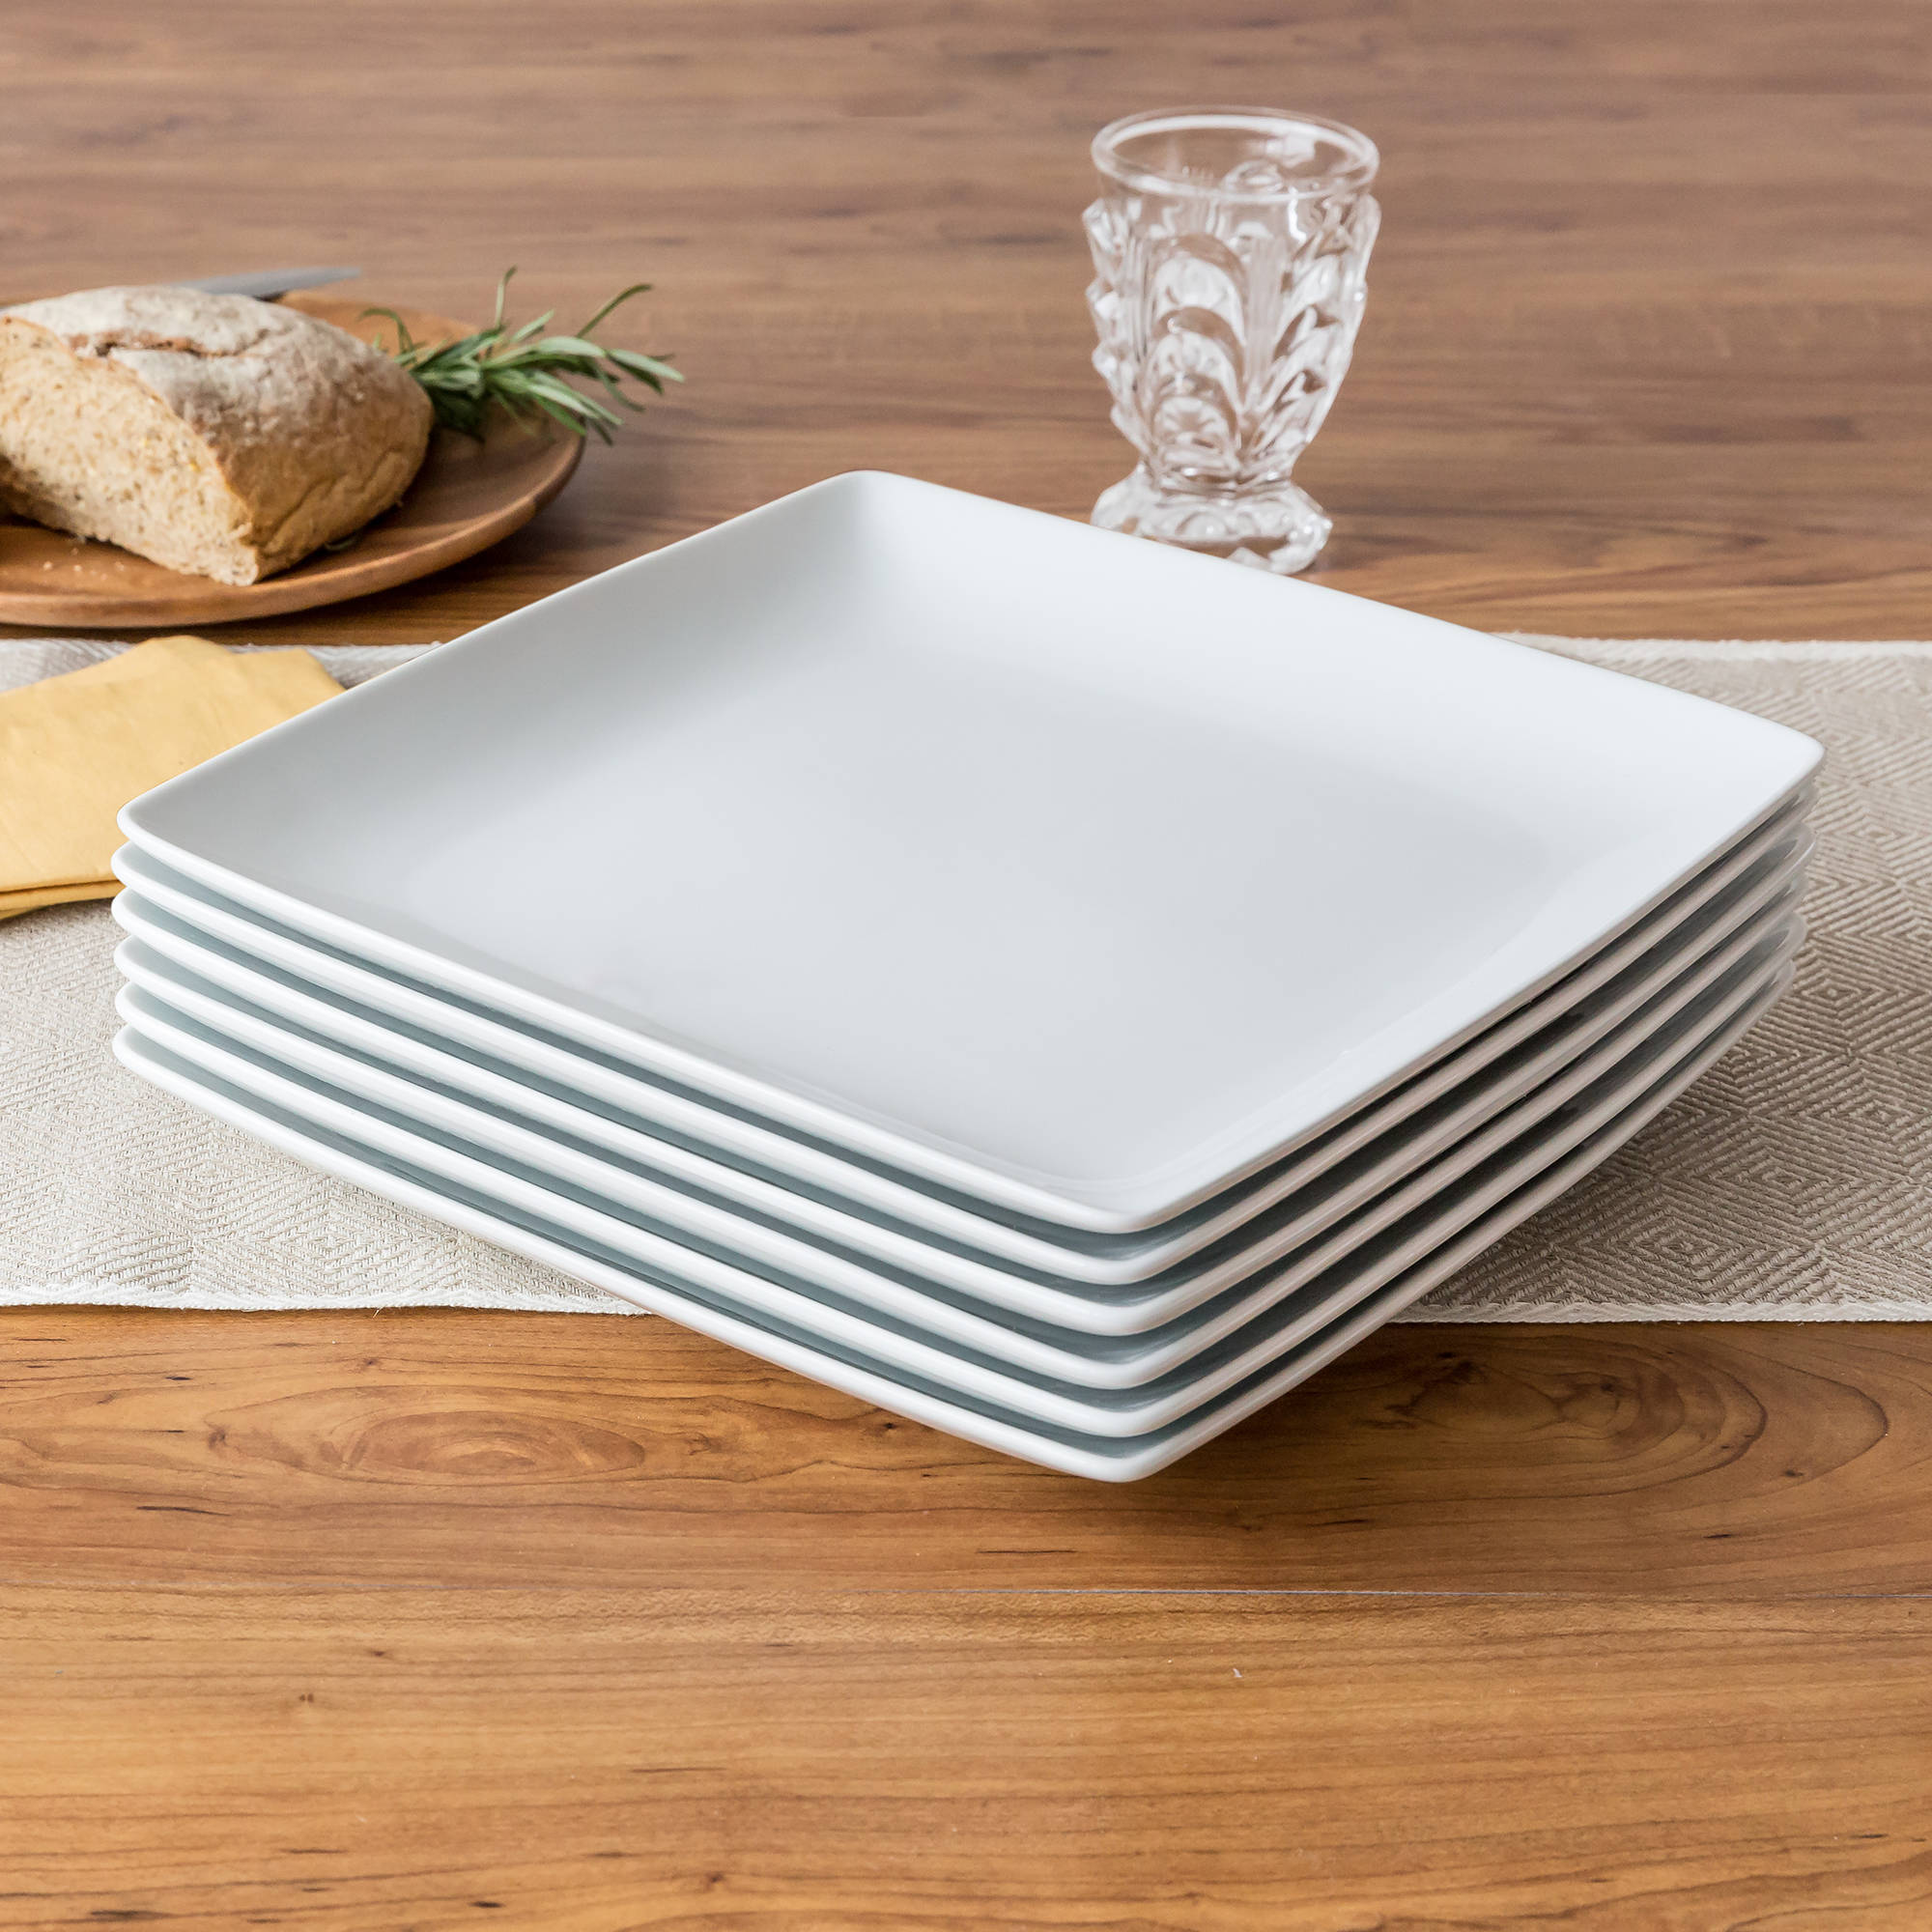 Better Homes and Gardens Coupe Square Dinner Plates Whiteu2026 & Better Homes and Gardens Loden 16-piece Porcelain Coupe Square ...